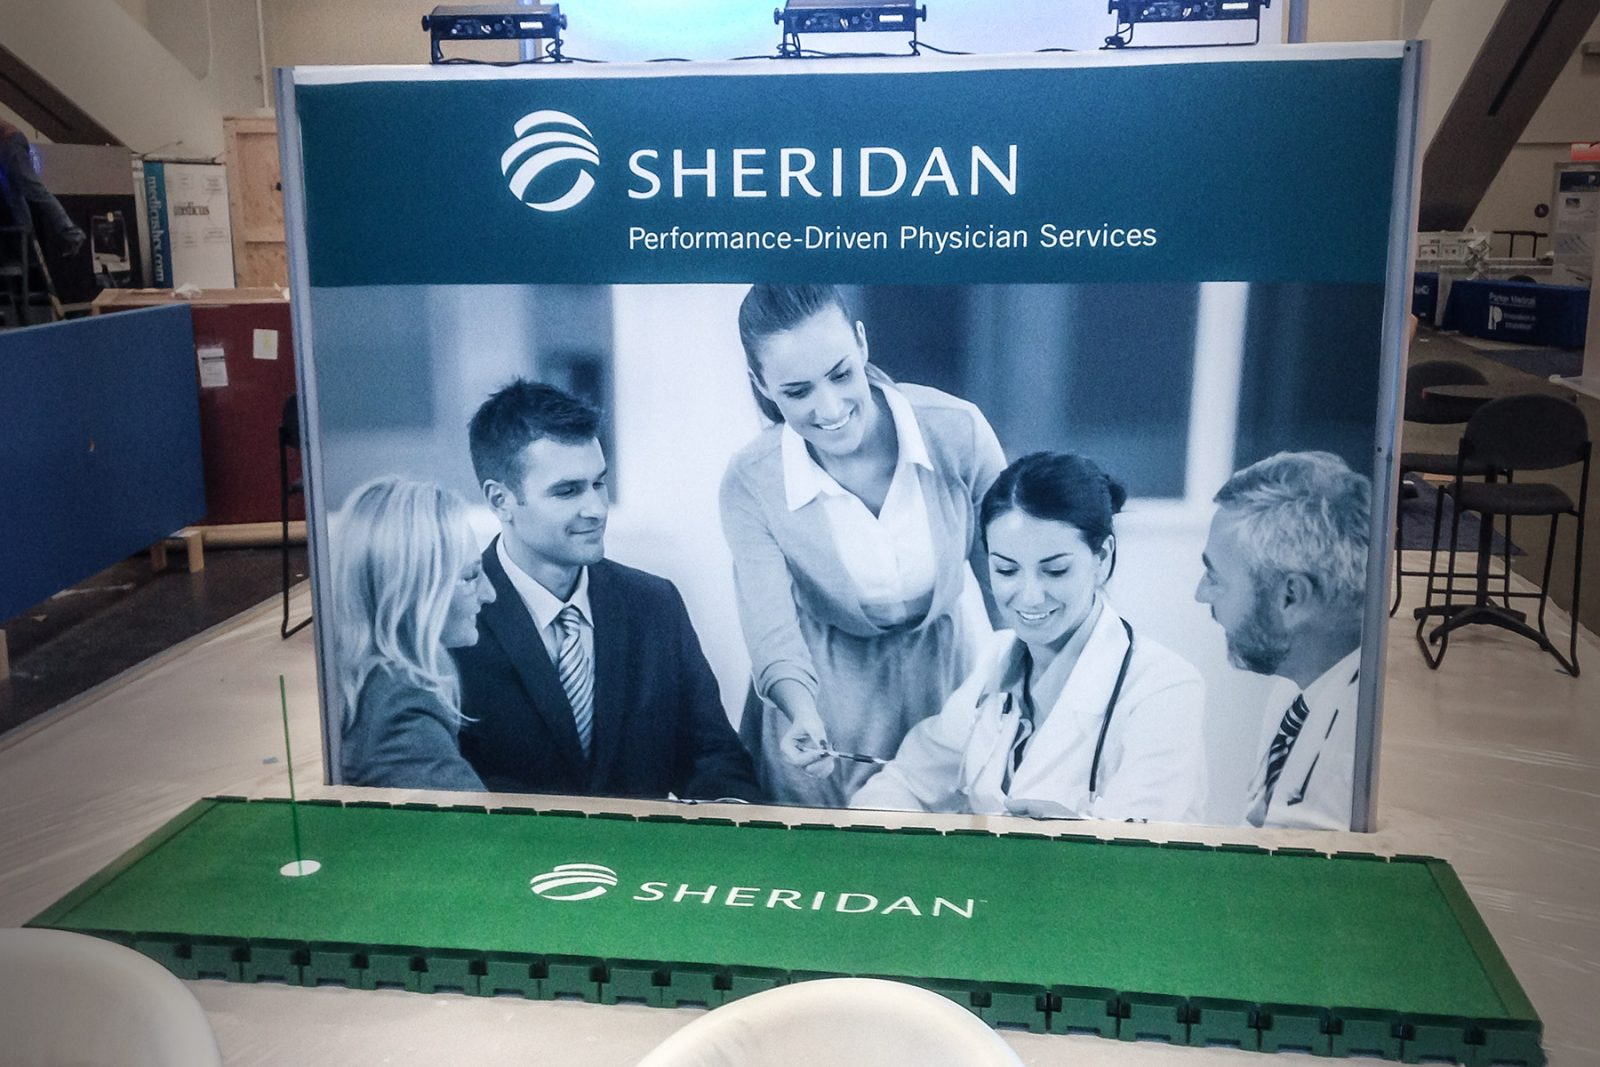 Sheridan at-show putting green promotion